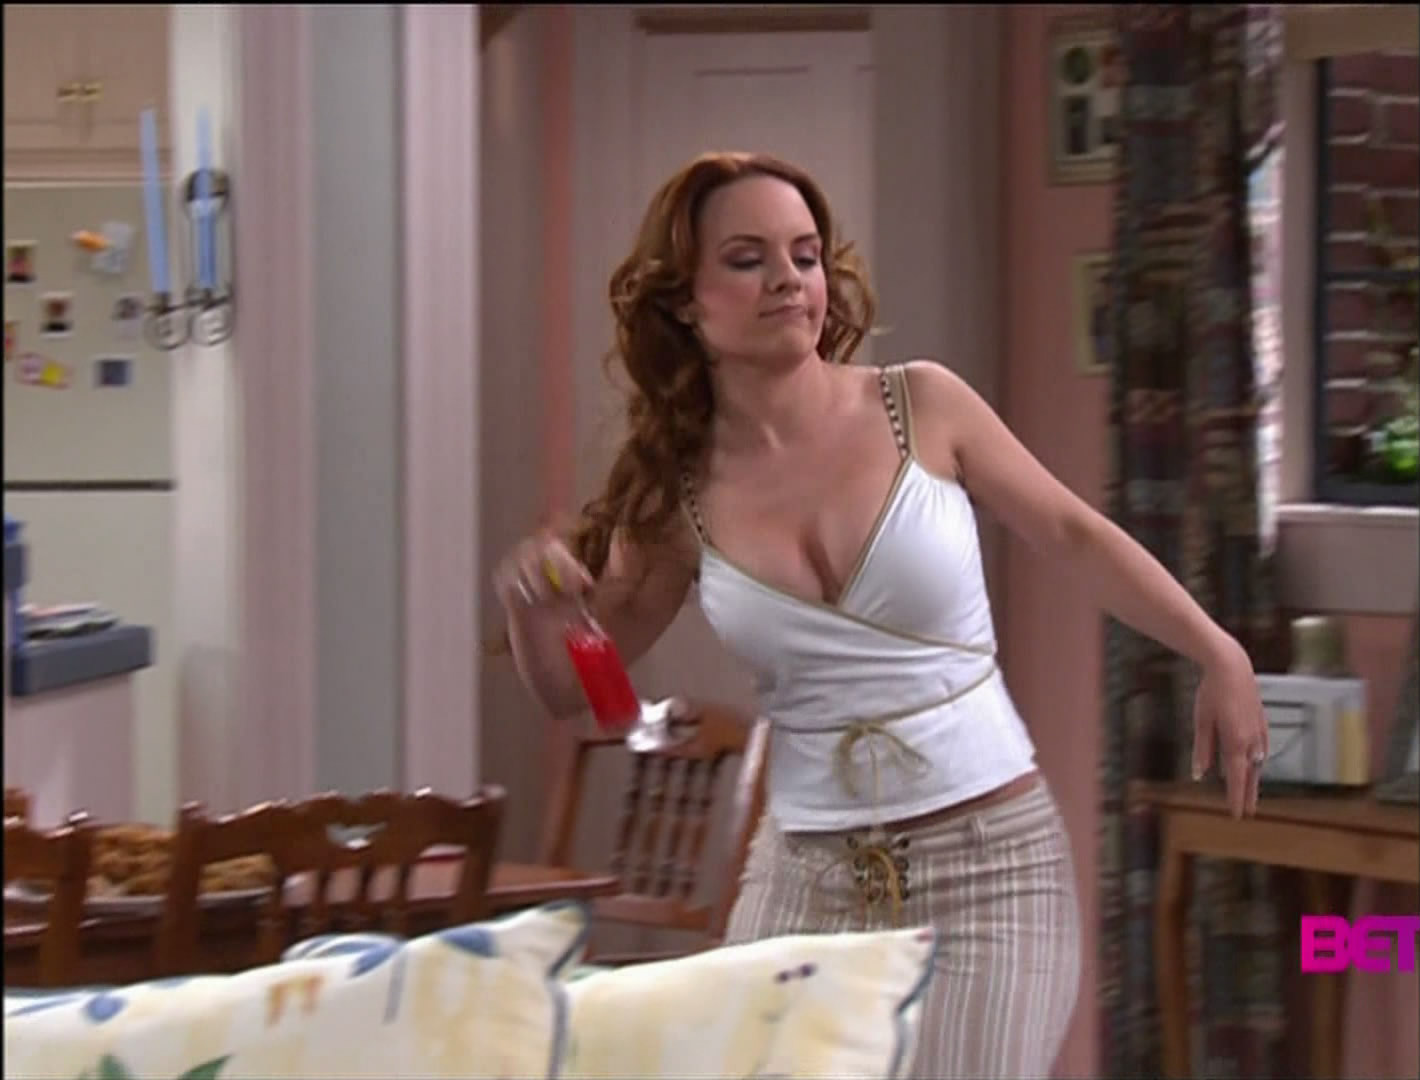 Has Jenna von Oy ever been nude? -